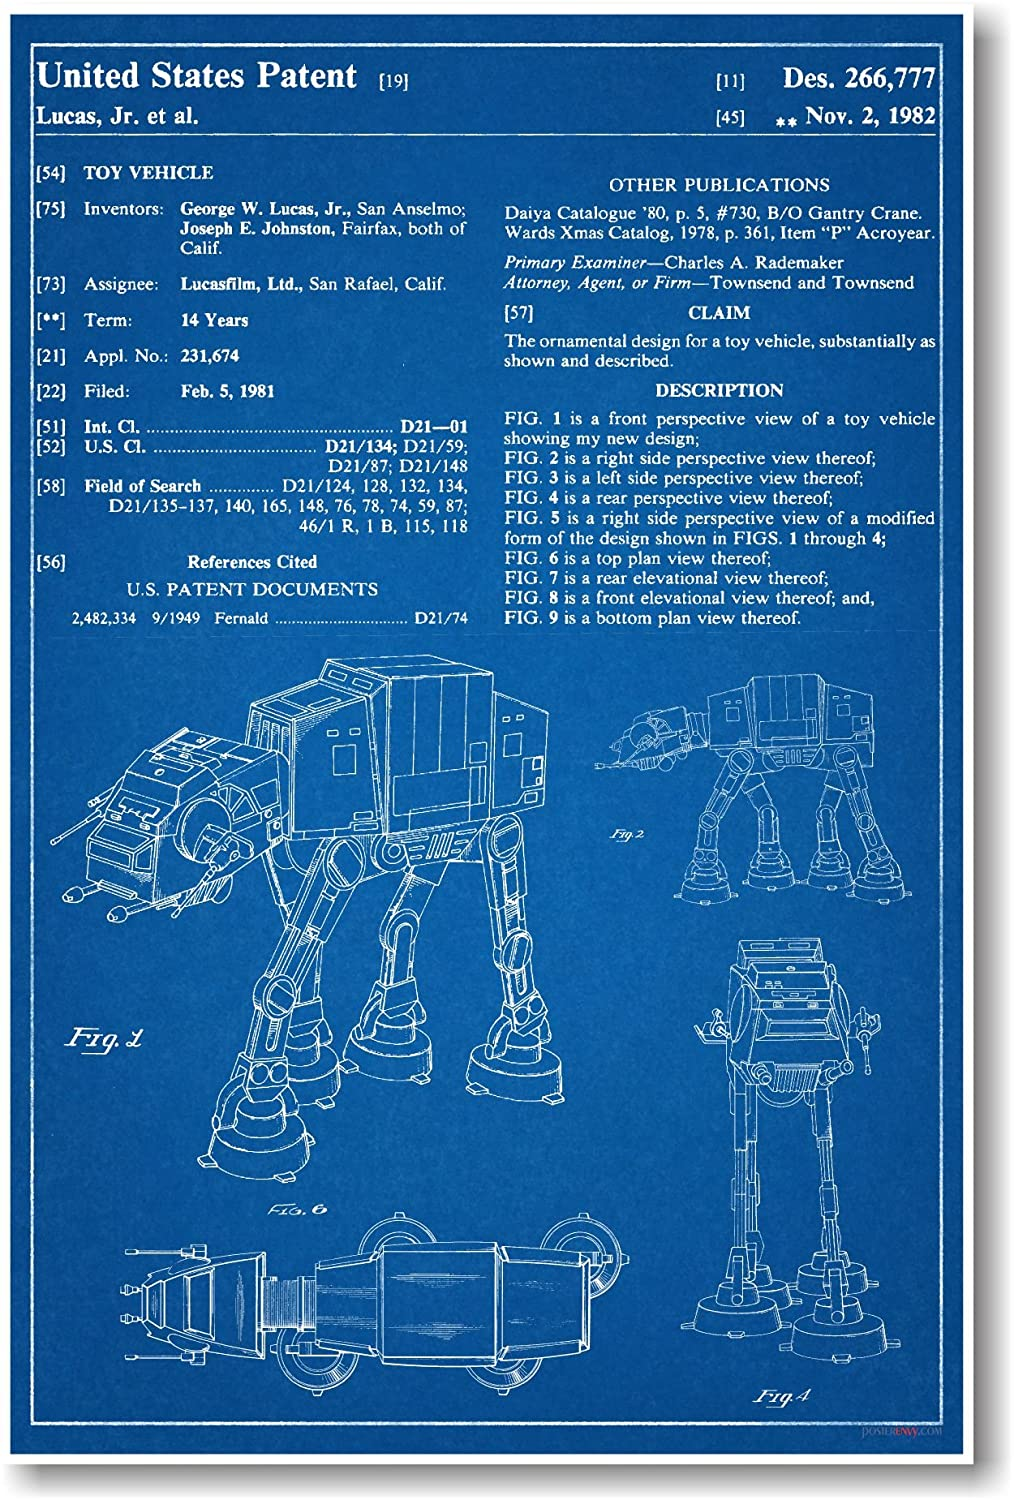 Amazon posterenvy star wars at at patent invention blueprint amazon posterenvy star wars at at patent invention blueprint poster 12 by 18 inch posters prints malvernweather Gallery